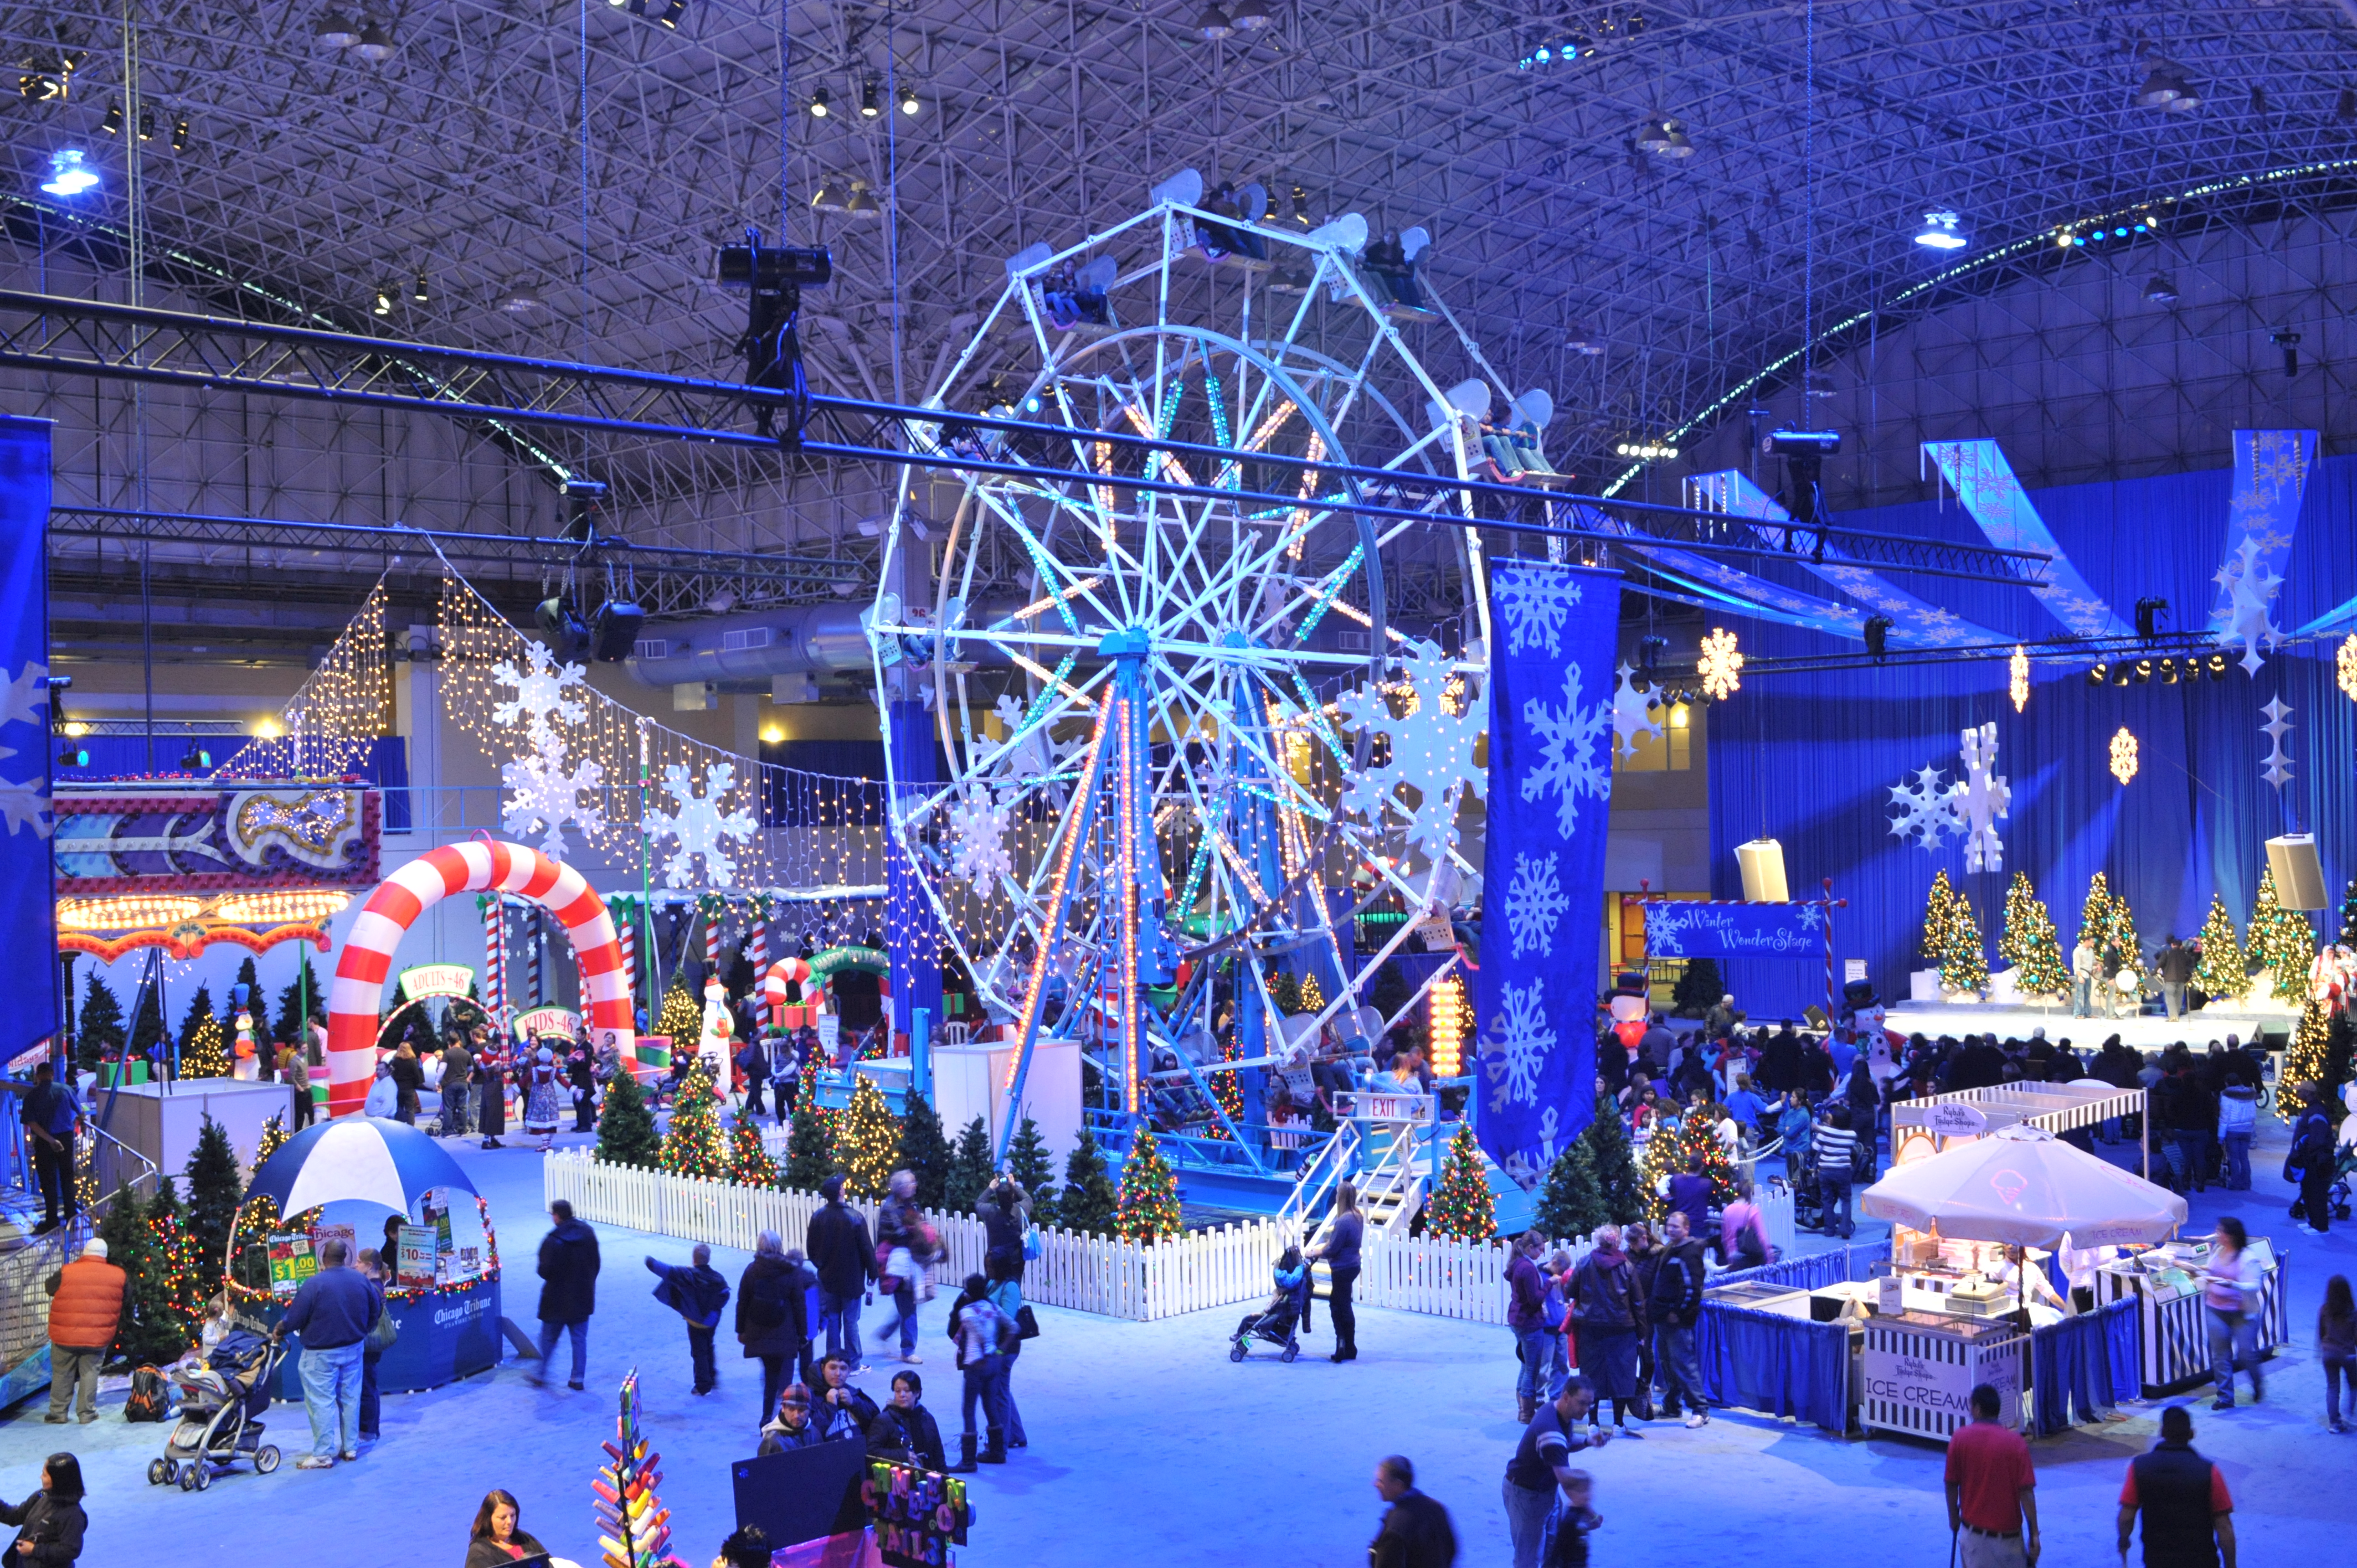 downtown chicago winter fest